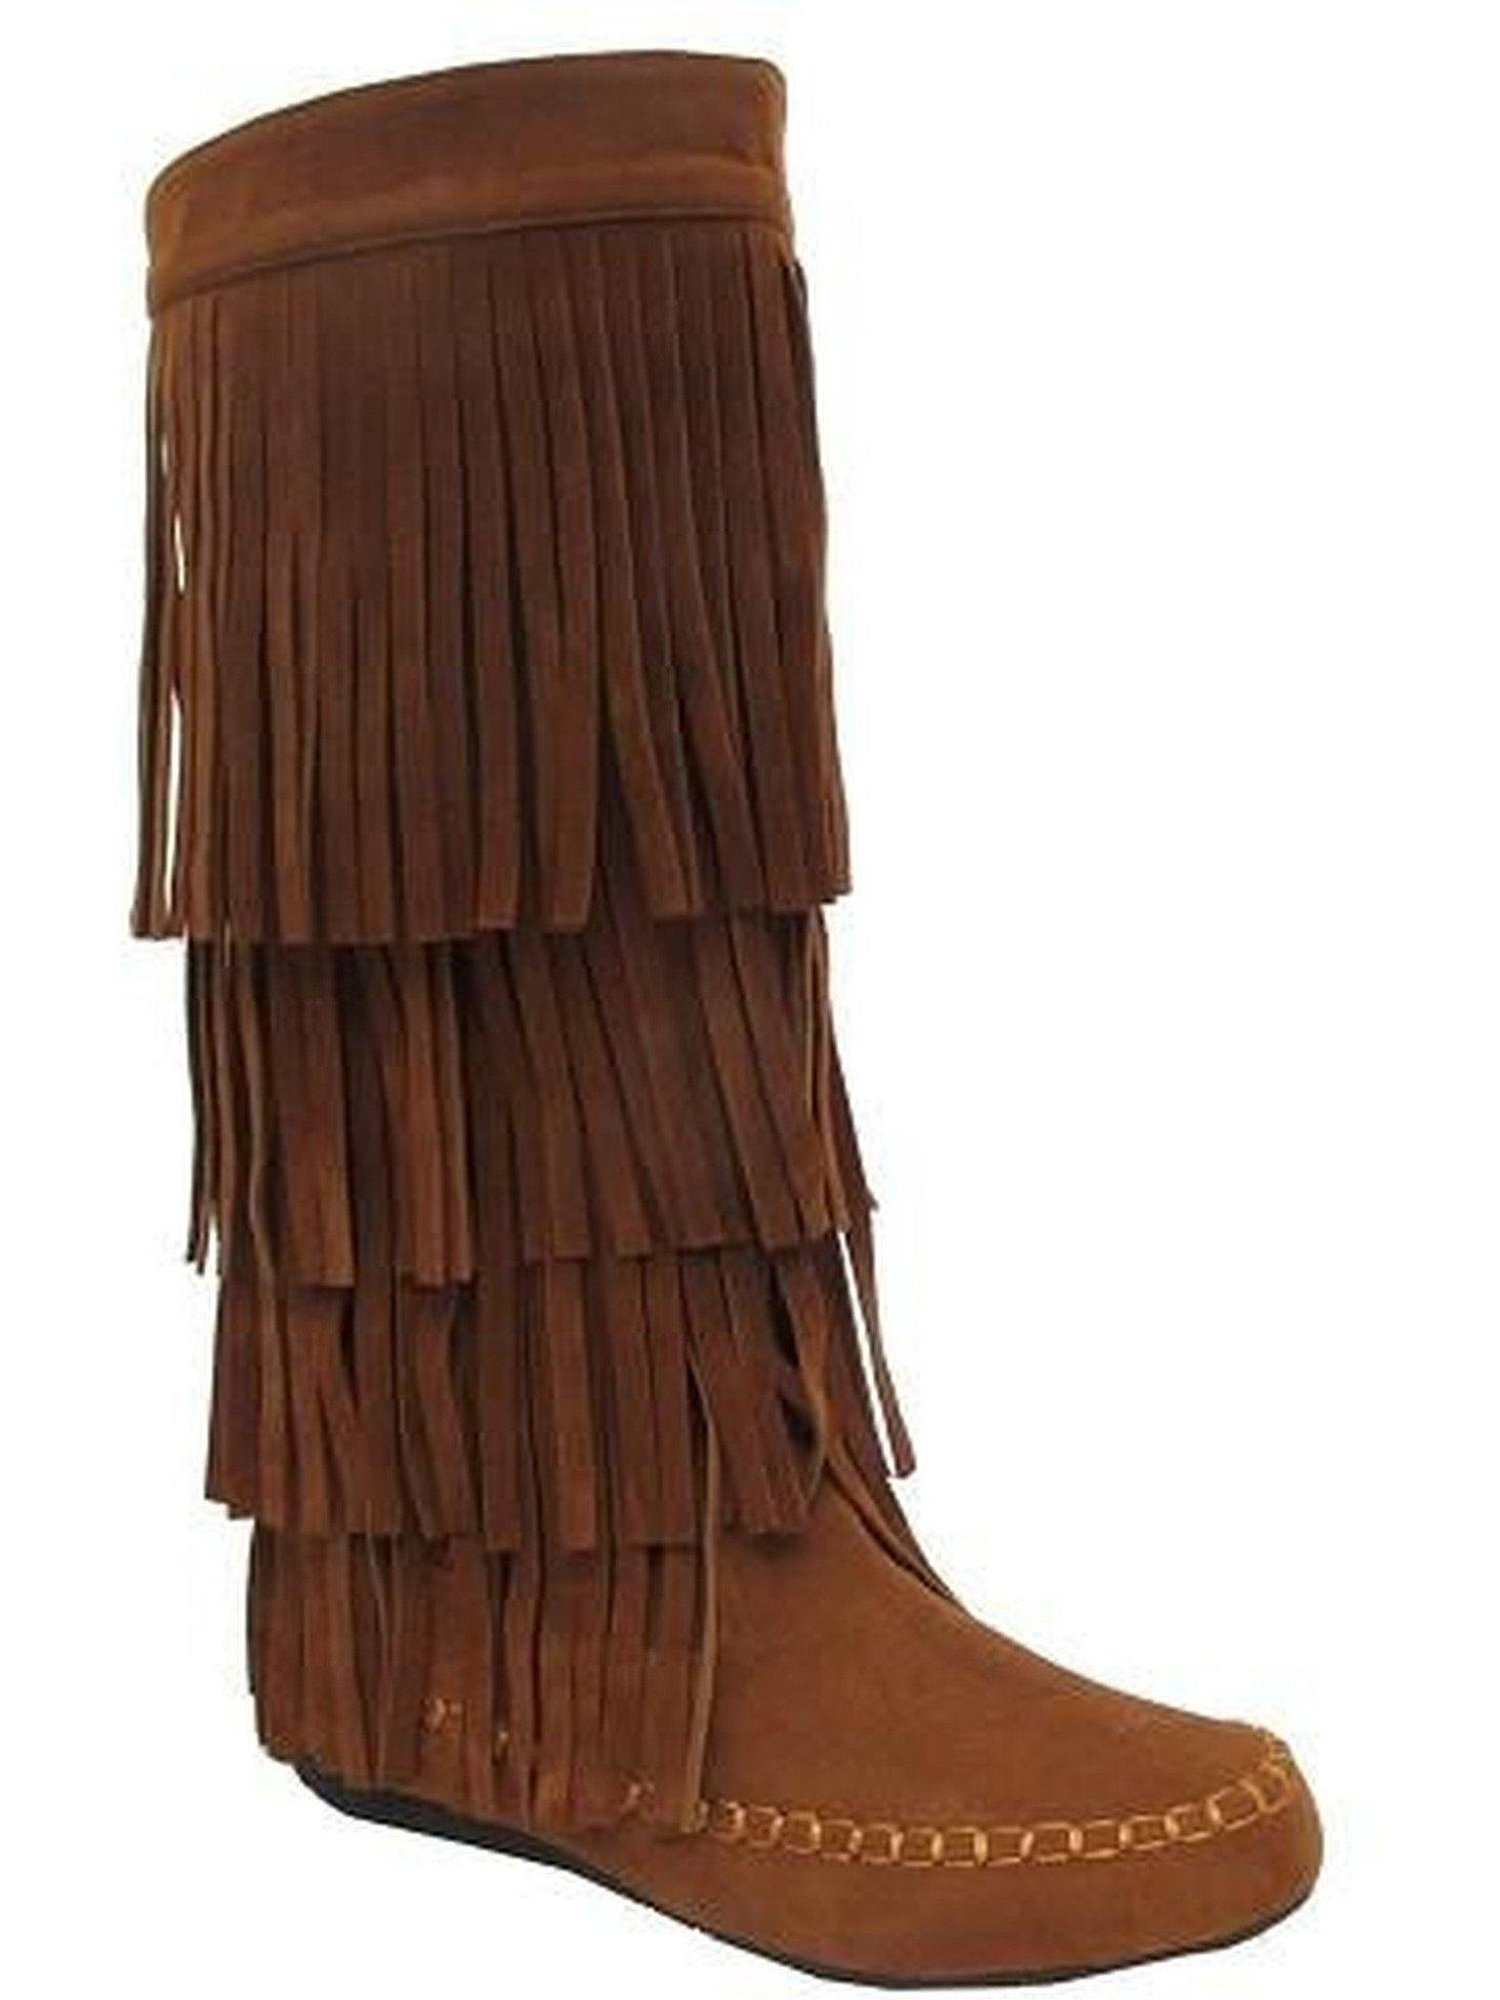 Knee High Fringe Boots, Tan Economical, stylish, and eye-catching shoes